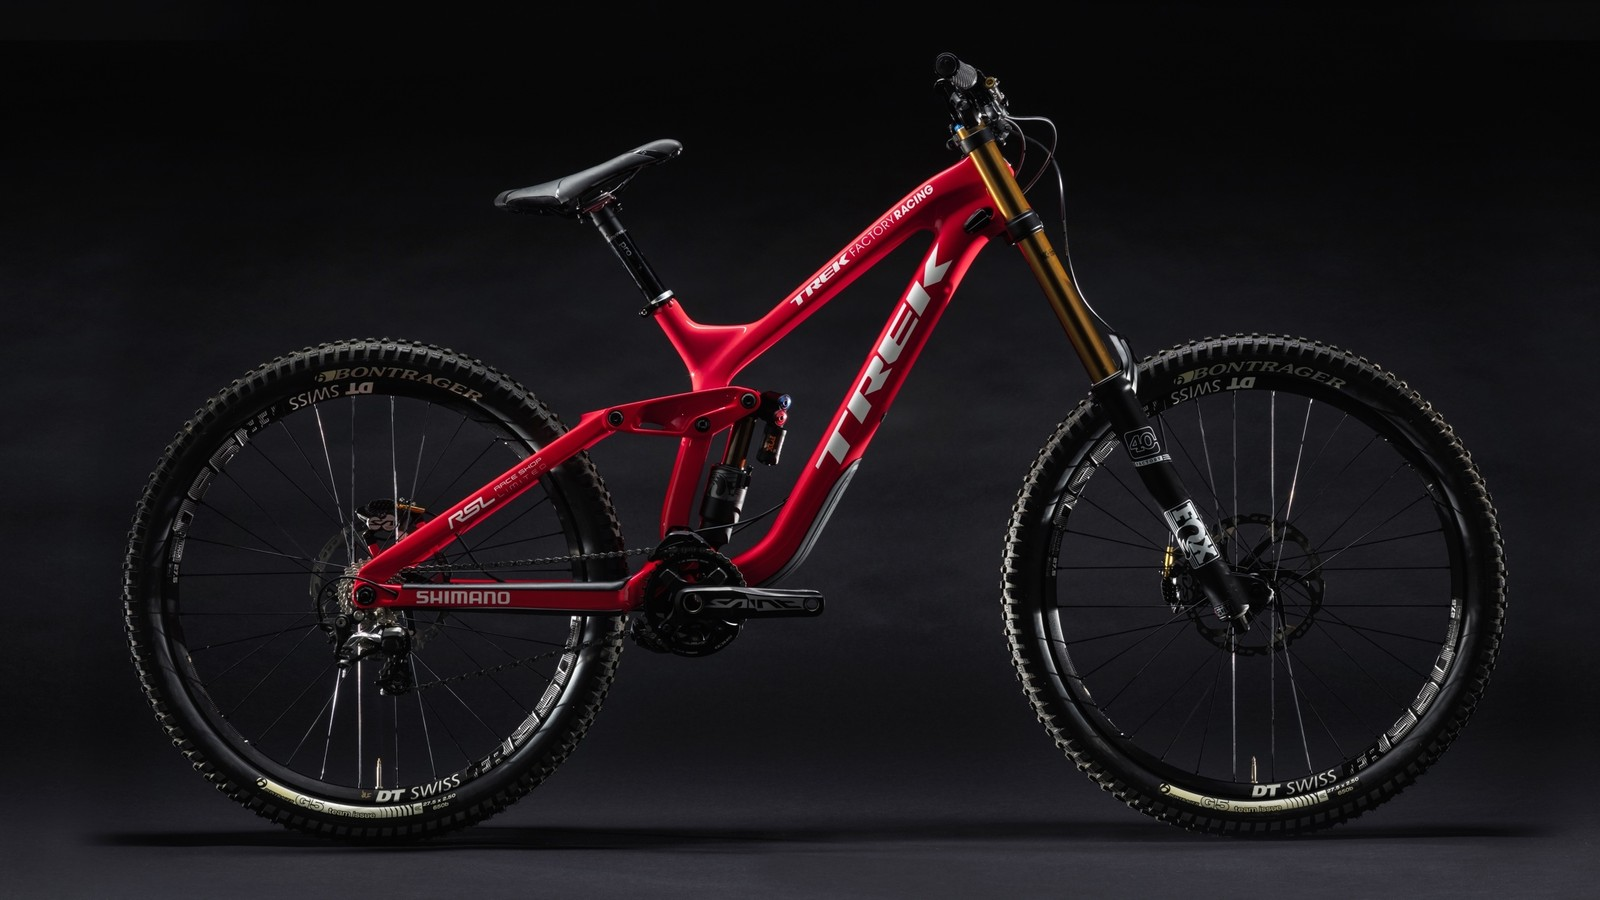 49db8b5faef You Can Have a 29er Downhill Bike - Trek Introduces the New Session ...